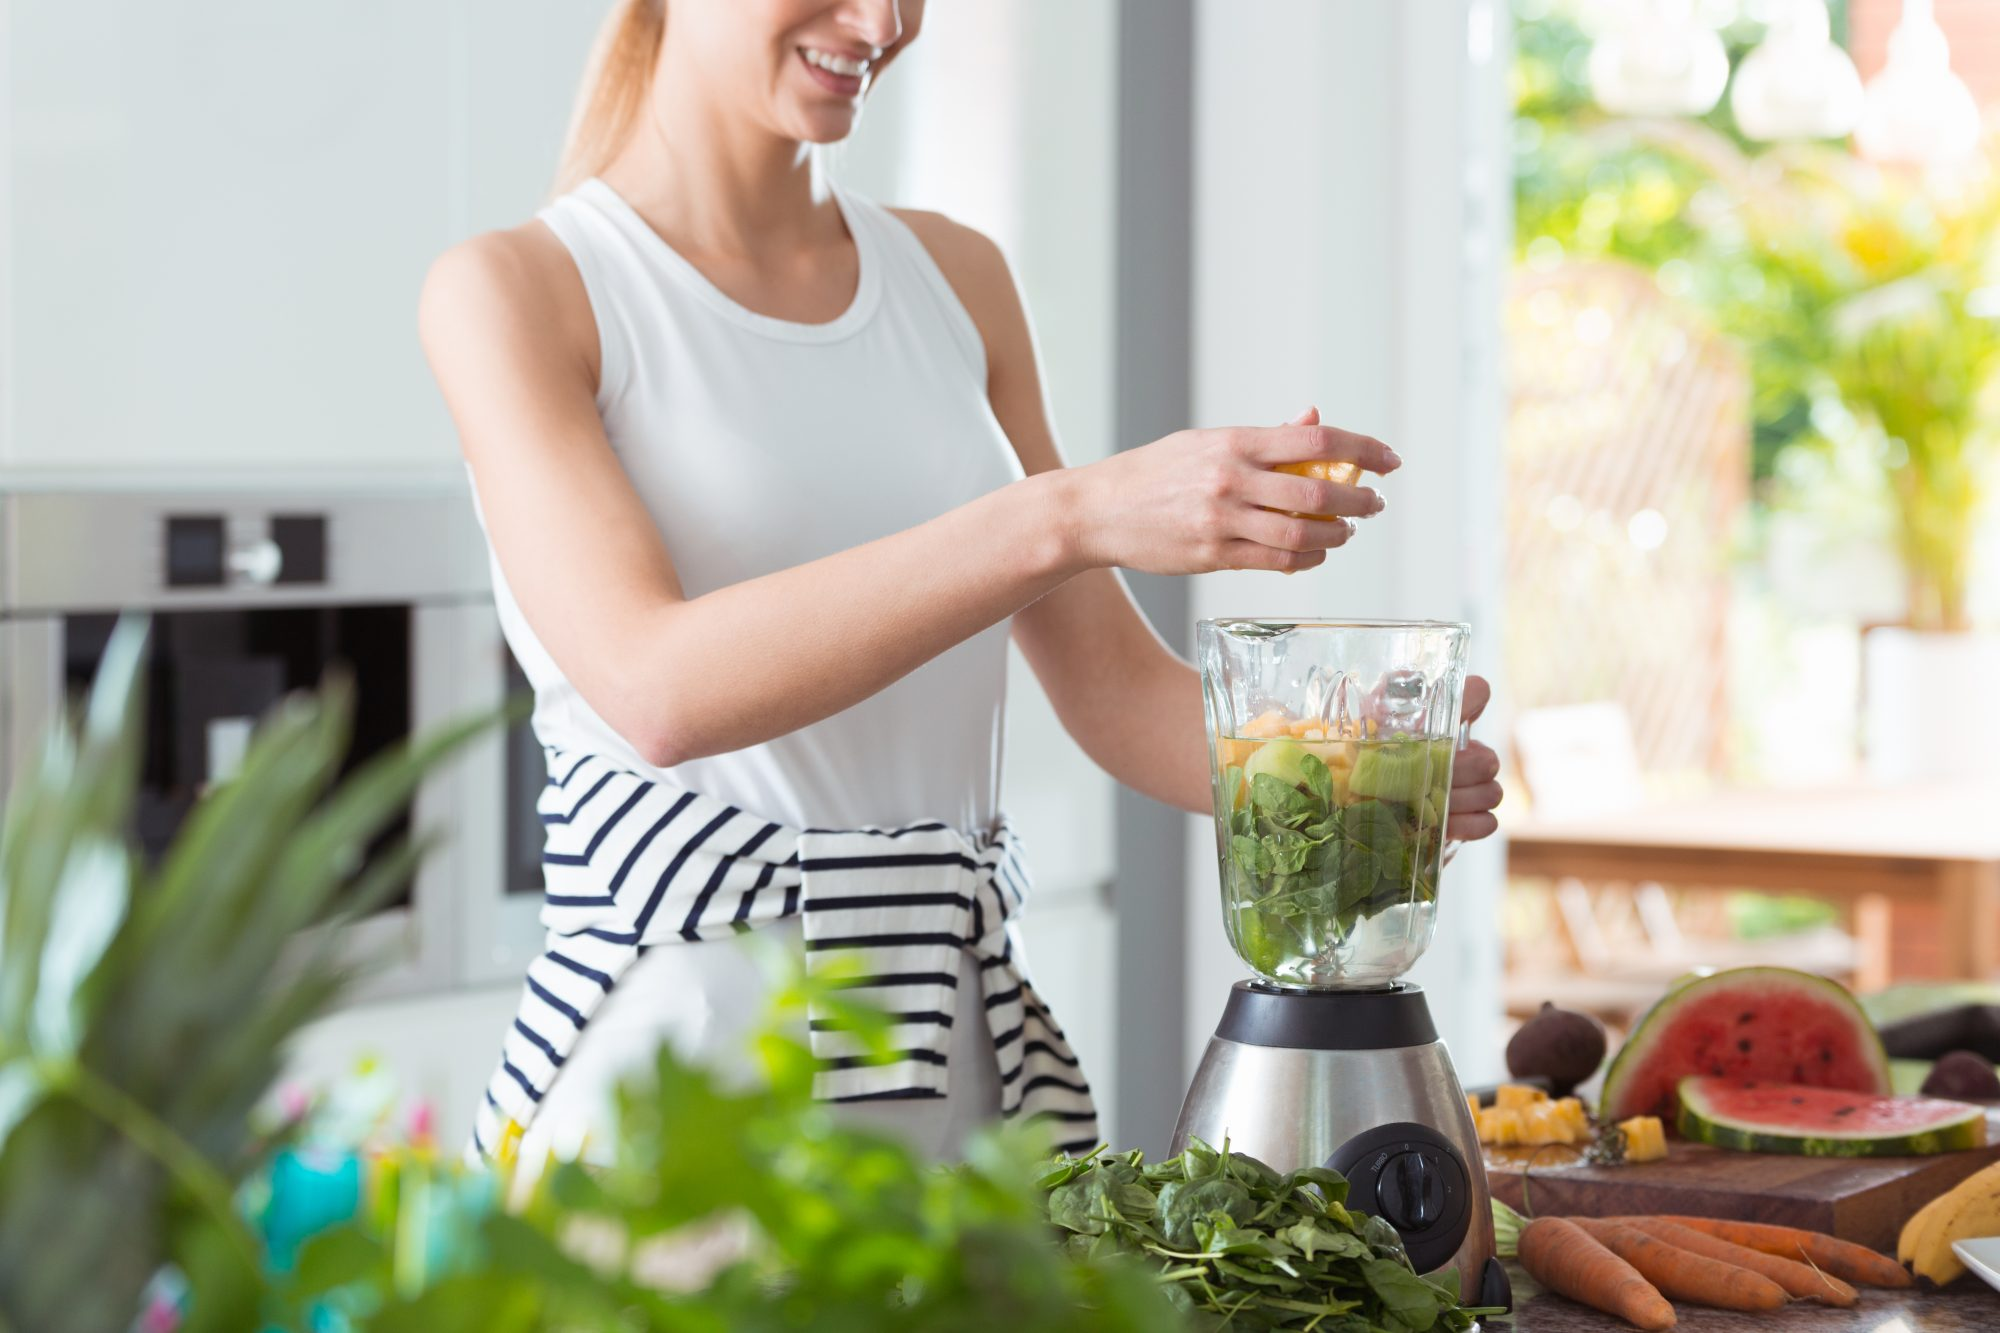 When to Use a Blender vs. When to Use a Food Processor